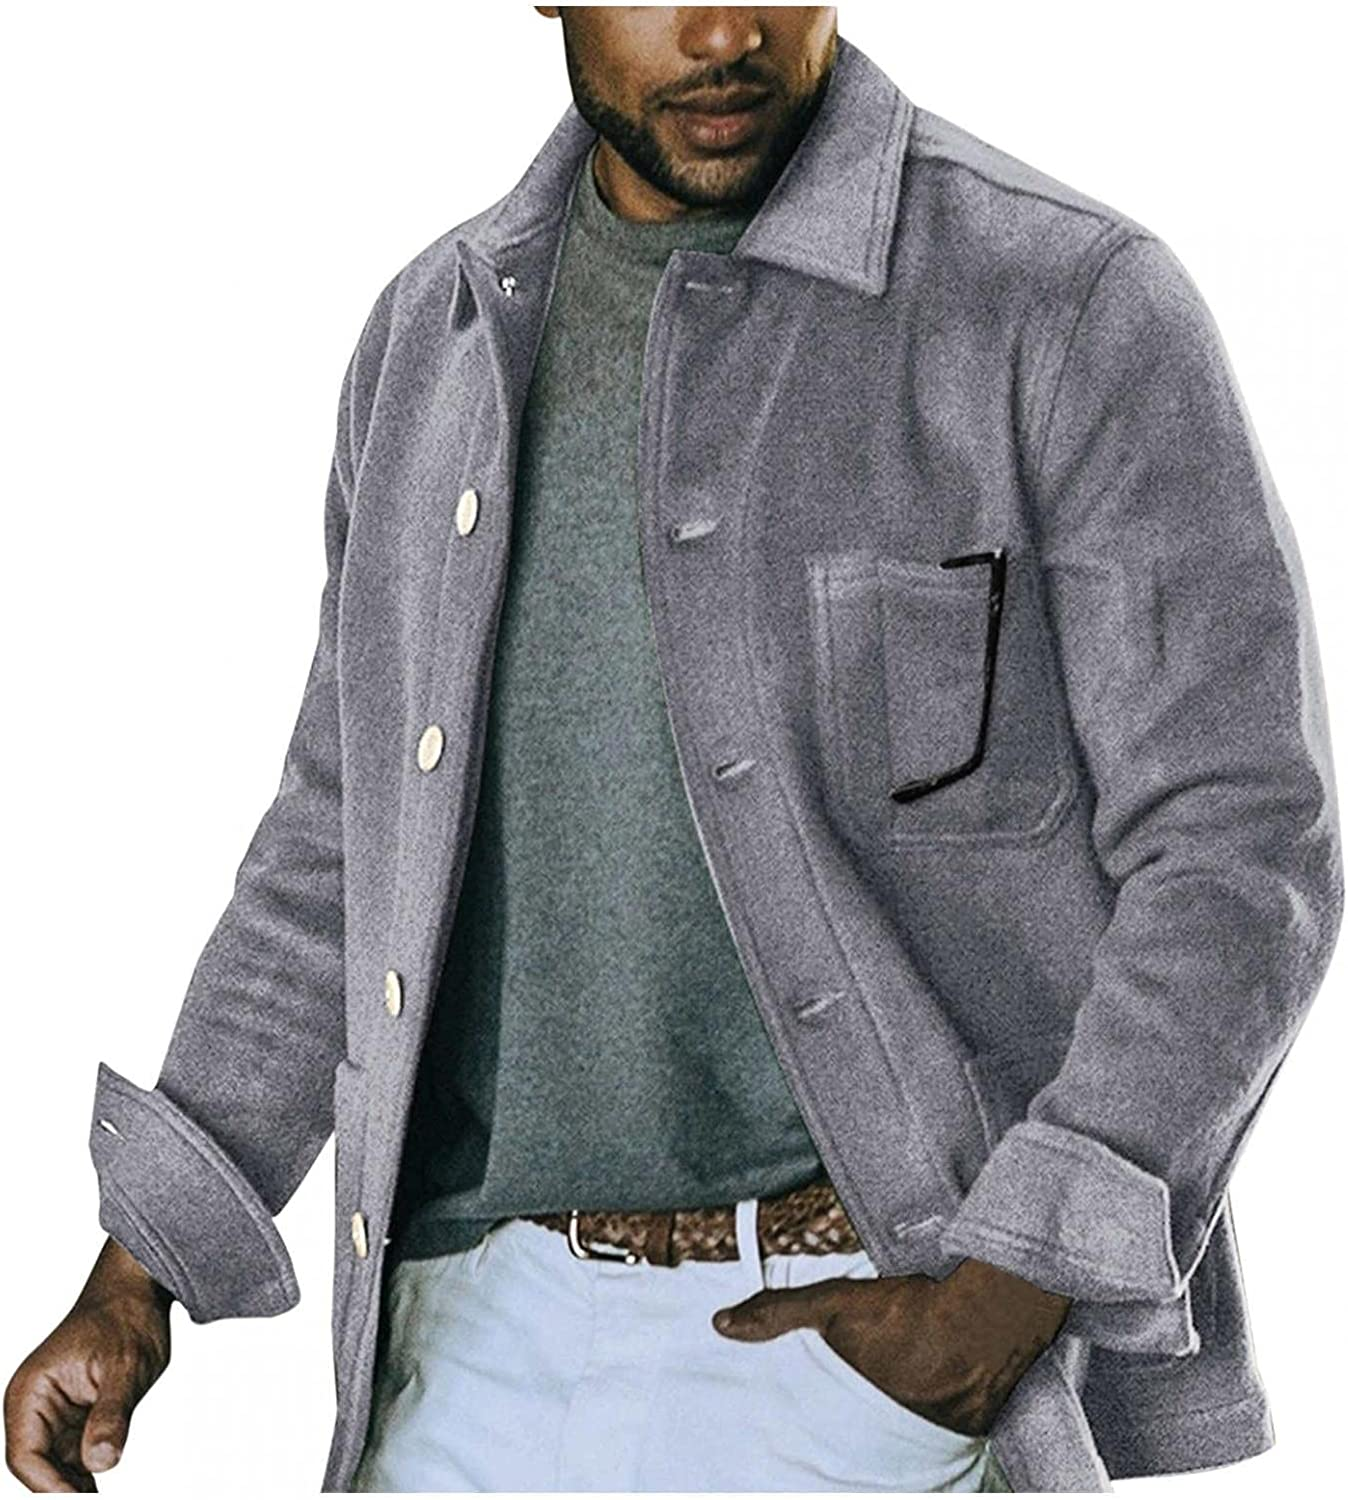 Mens Casual Jackets Single Breasted Button Down Military Peacoats Heavyweight Wool Blend Thermal Tops Outwear